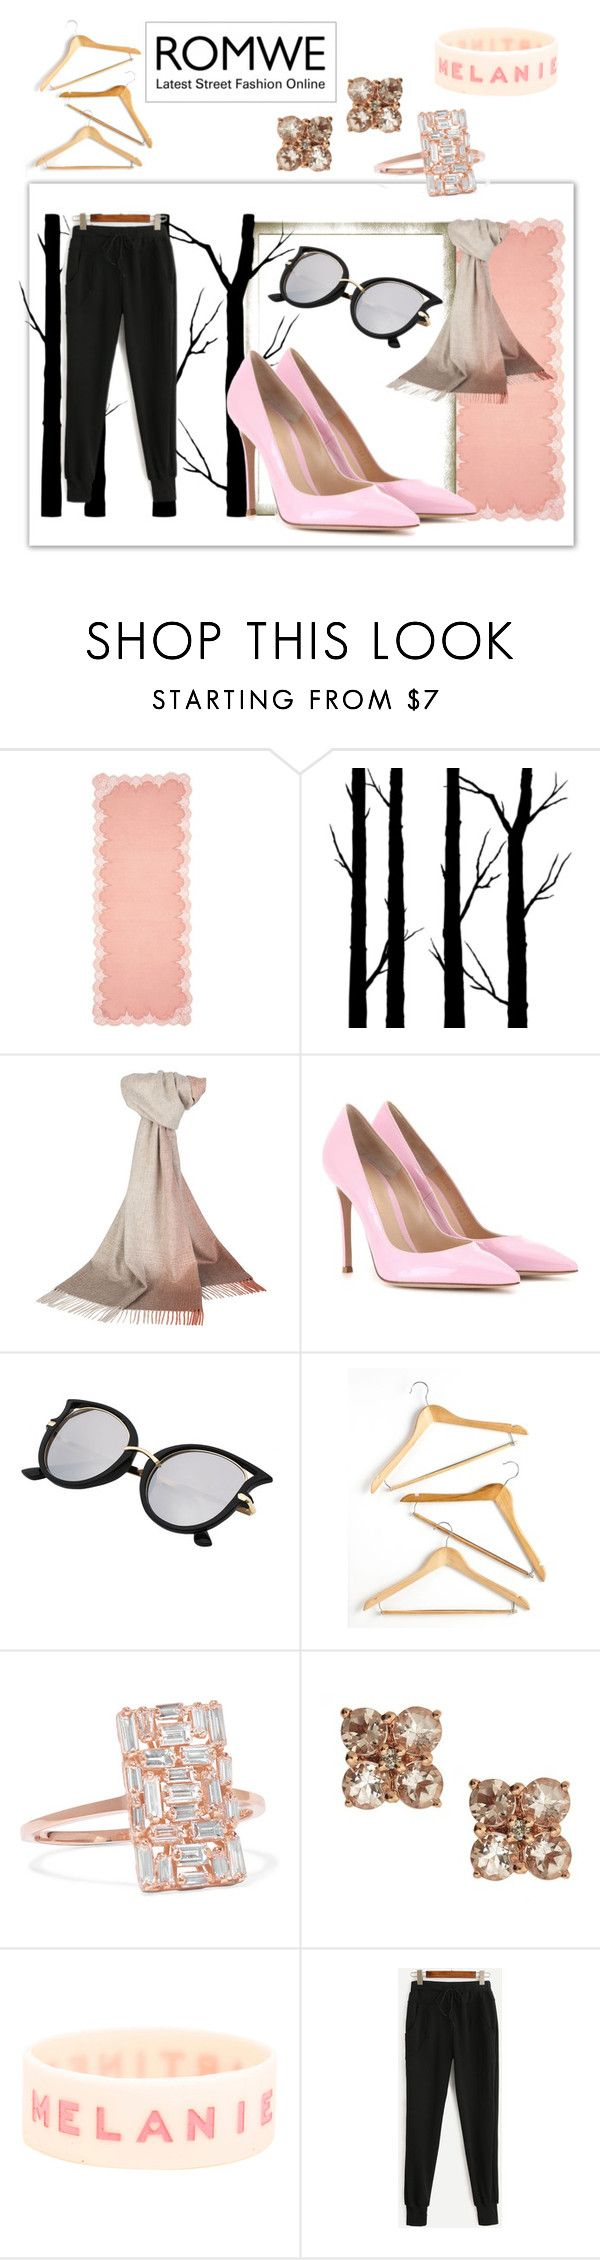 """Romwe set"" by chicagofashionlove ❤ liked on Polyvore featuring Janavi, Dot & Bo, Johnstons of Elgin, Gianvito Rossi, Honey-Can-Do, Suzanne Kalan, Anika and August and romwe"